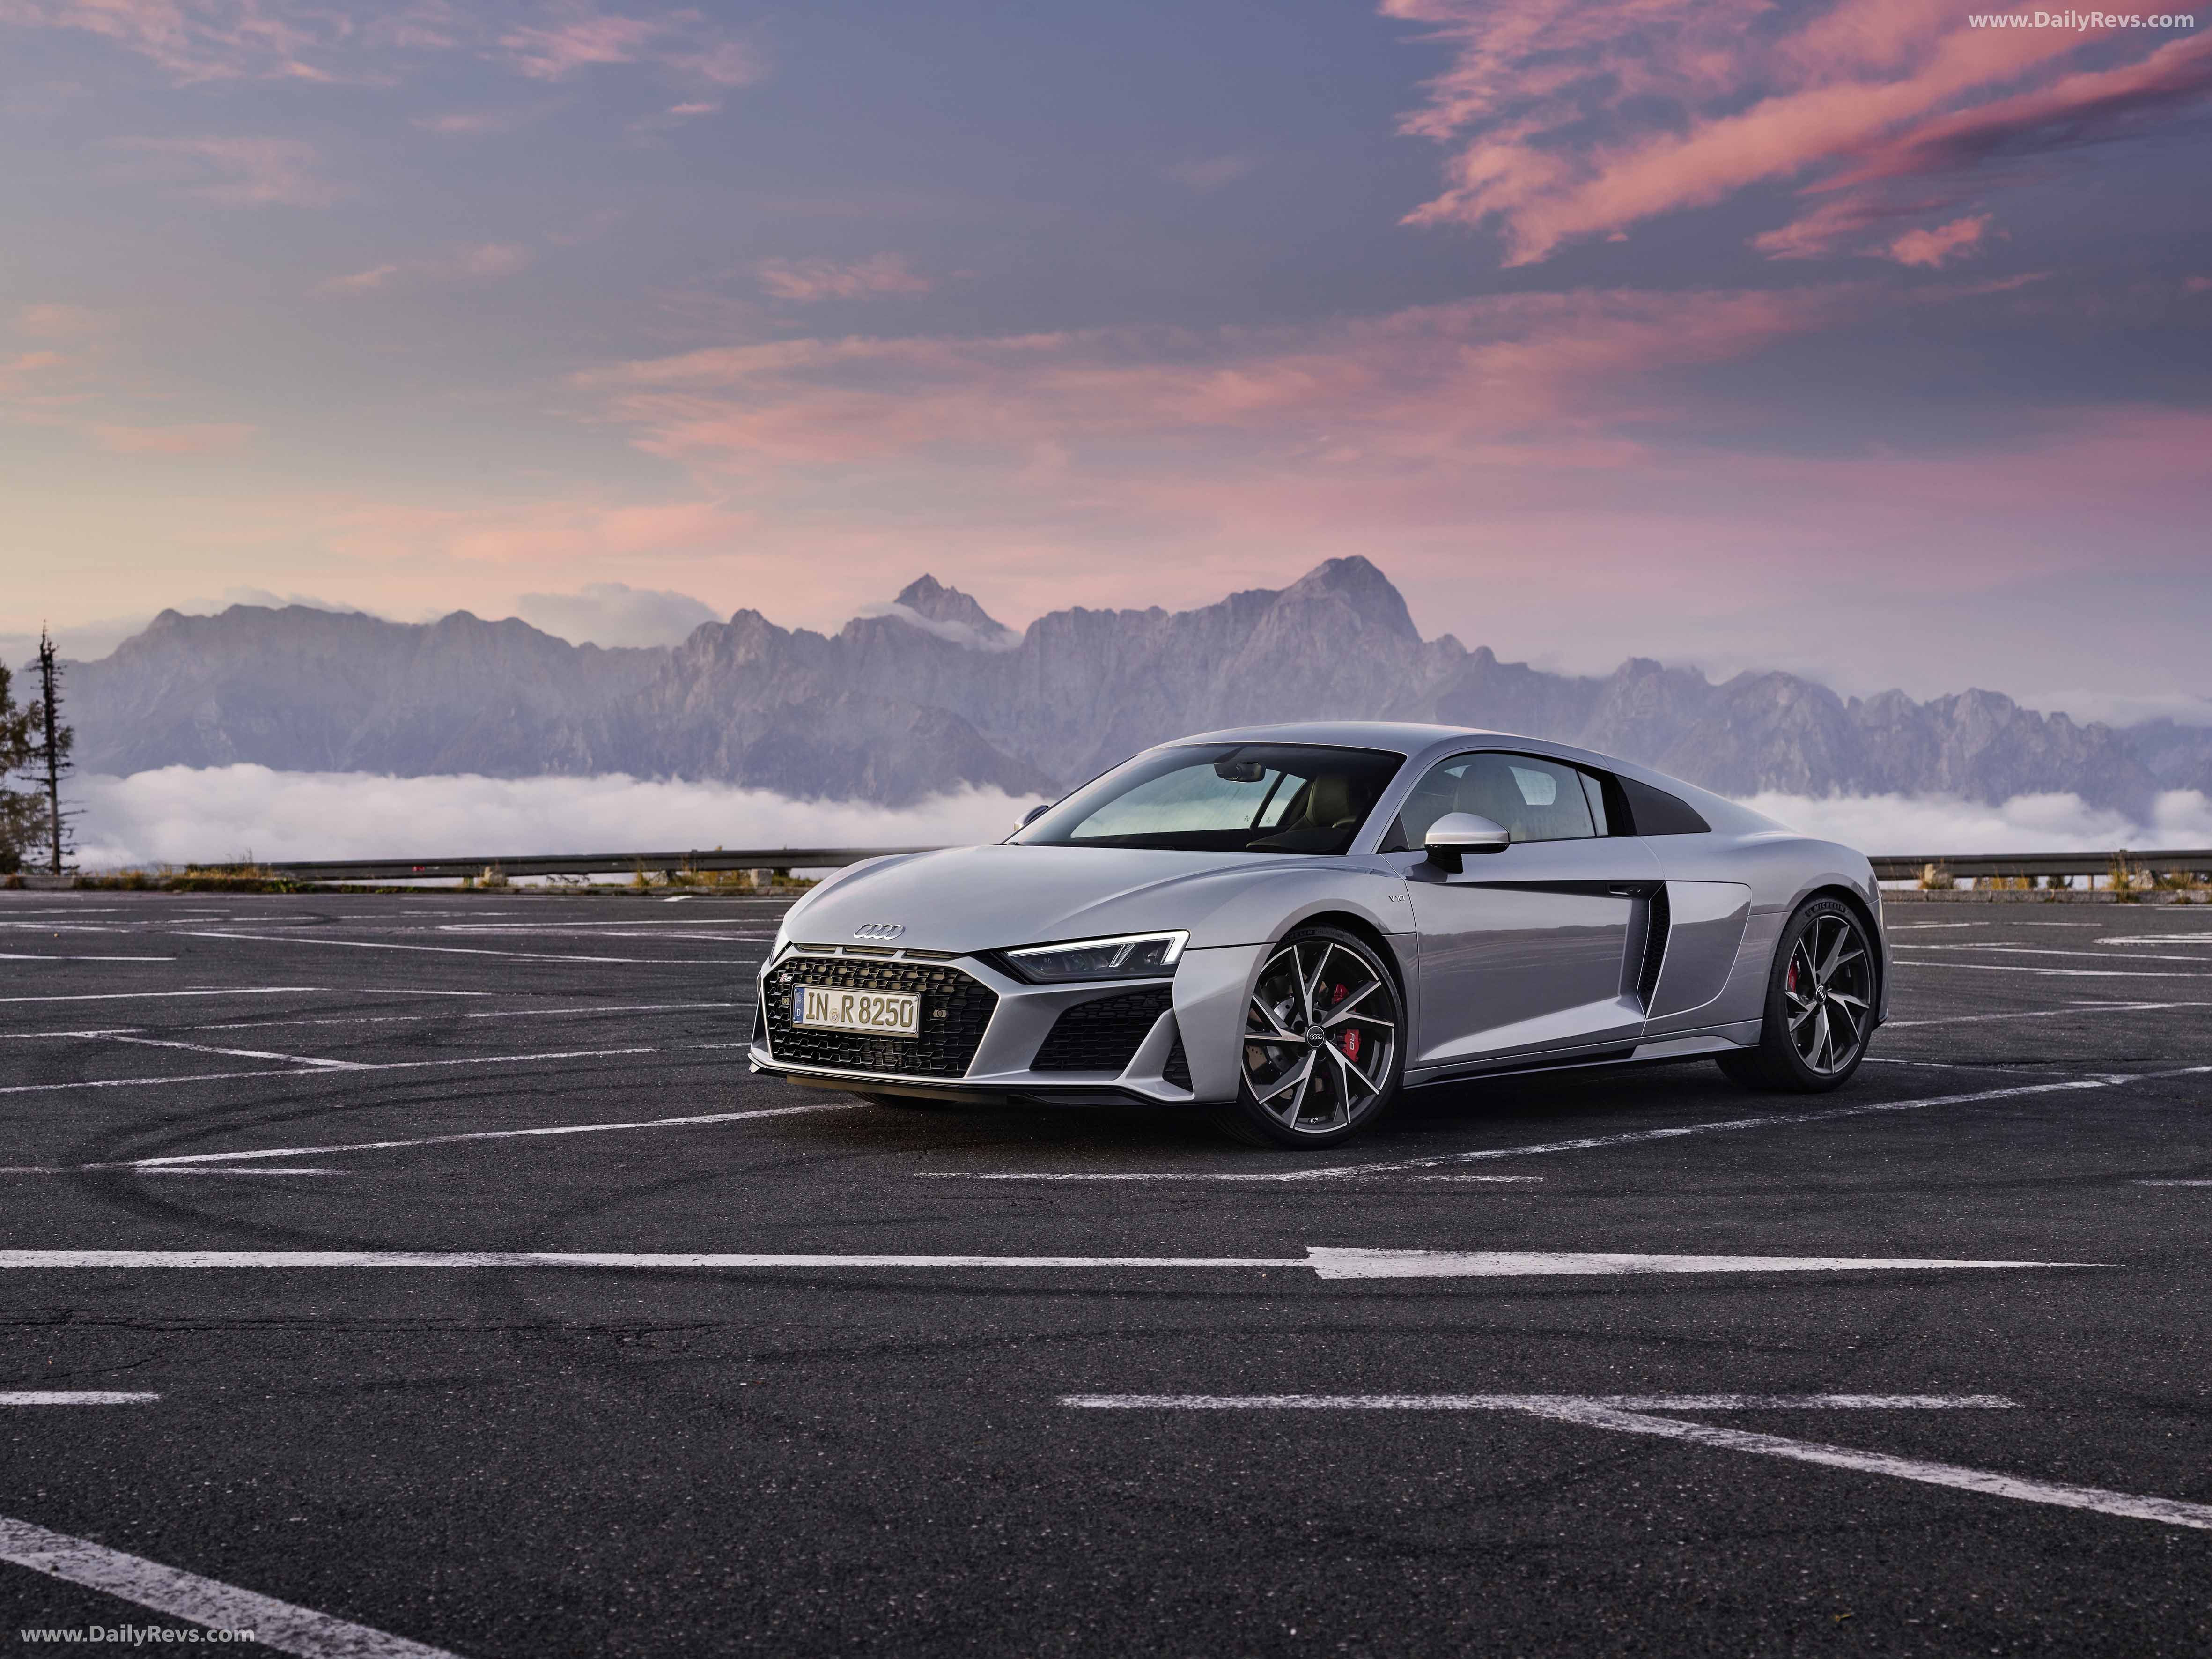 2020 Audi R8 V10 RWD Coupe - HD Pictures, Specs ...